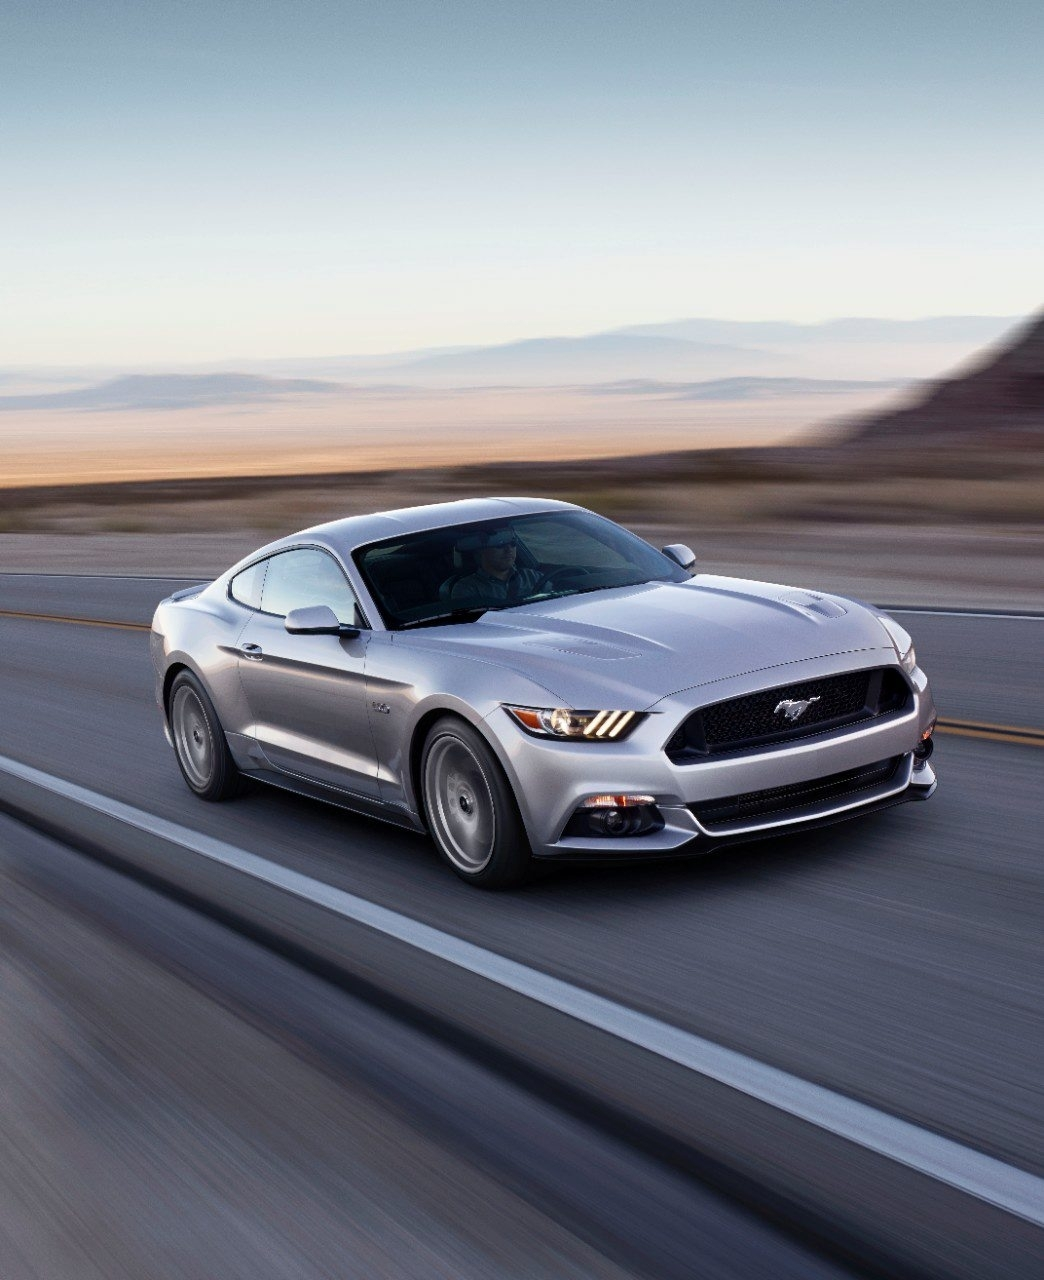 Wood Group Mustang lands contract win